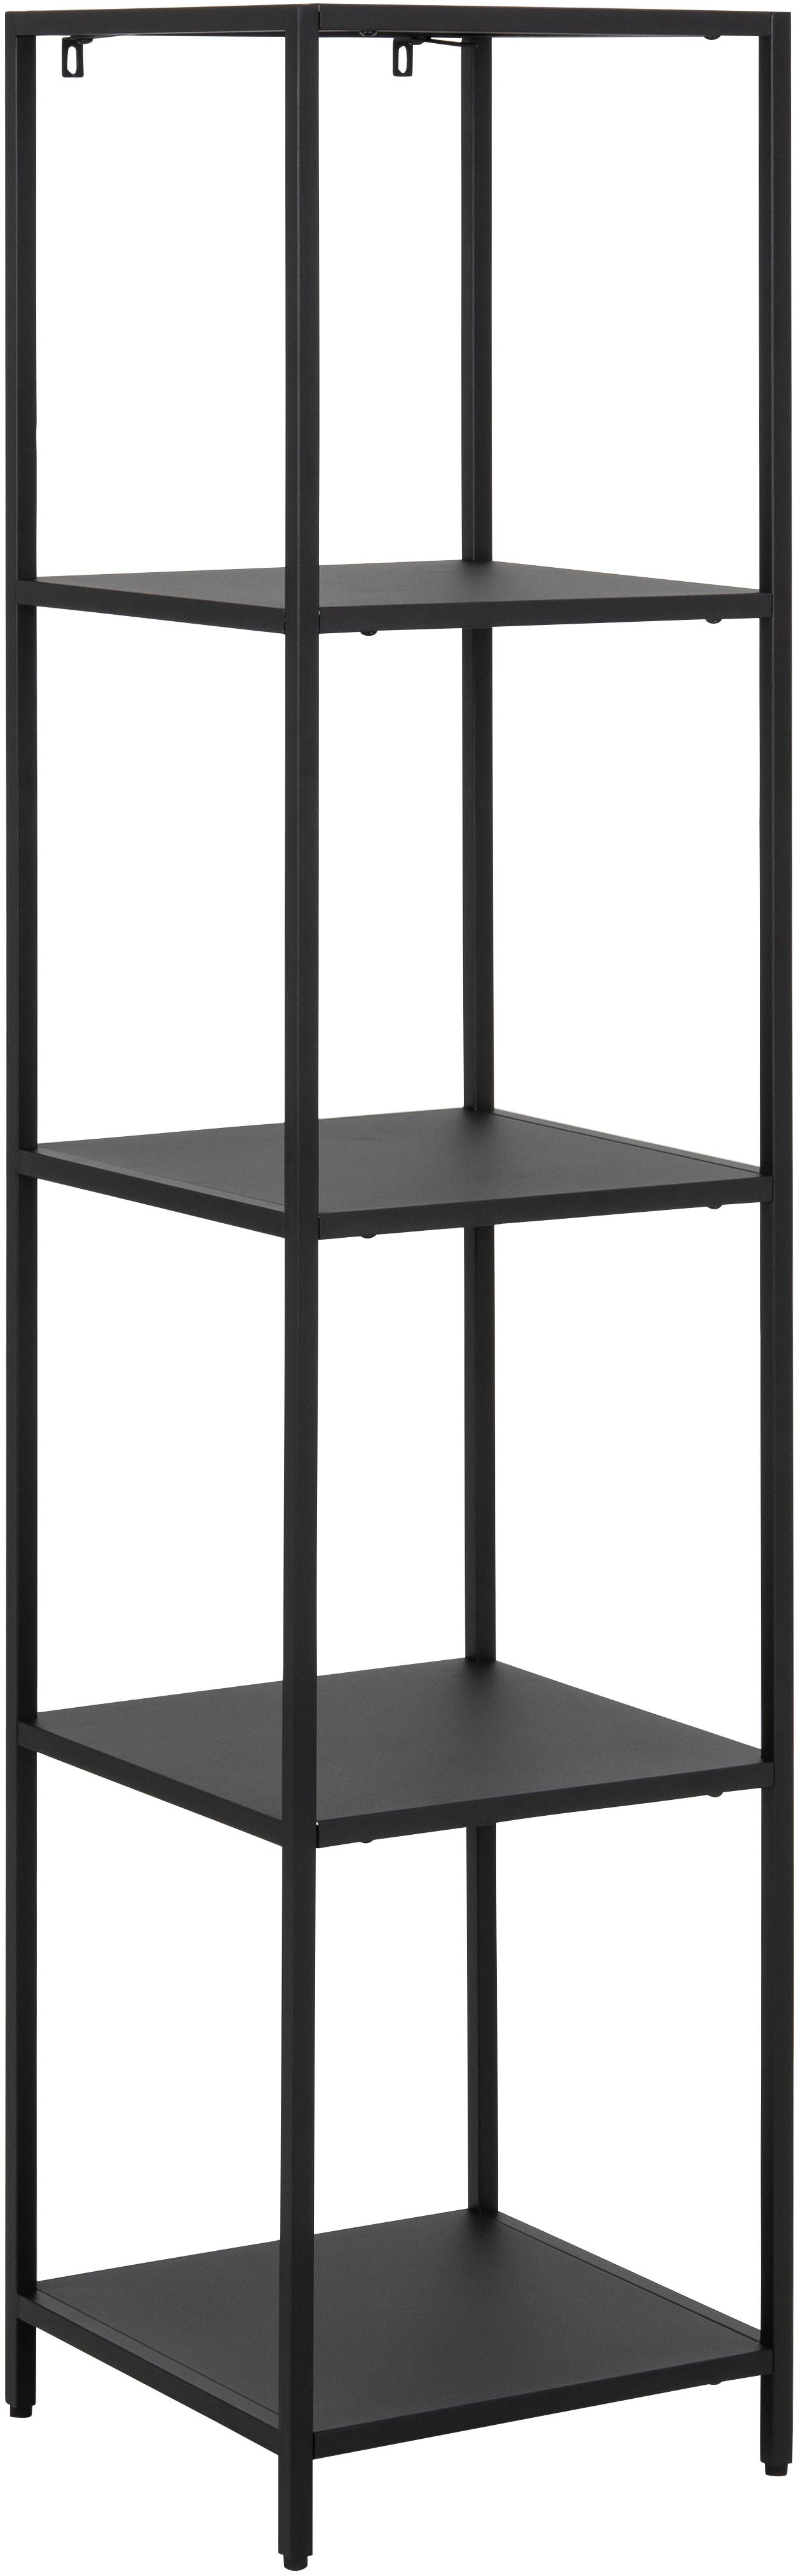 Metall-Standregal Newton in Schwarz, Metall, pulverbeschichtet, Schwarz, 35 x 146 cm